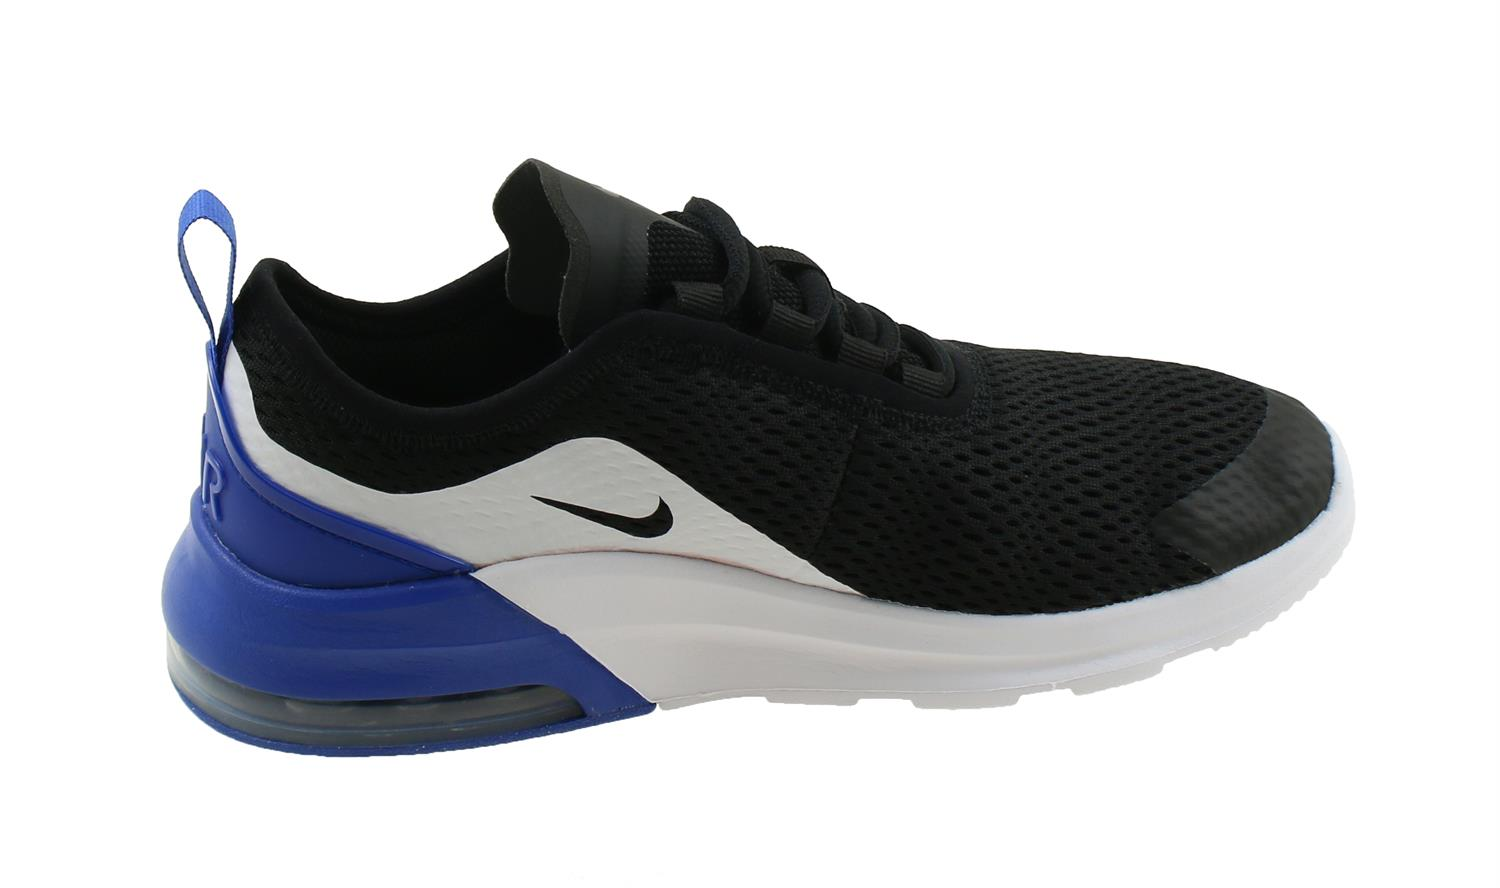 f8a74bb4643 Nike Air Max Motion 2. AQ2741 003 Black Game Royal White. Product  afbeelding Product afbeelding ...